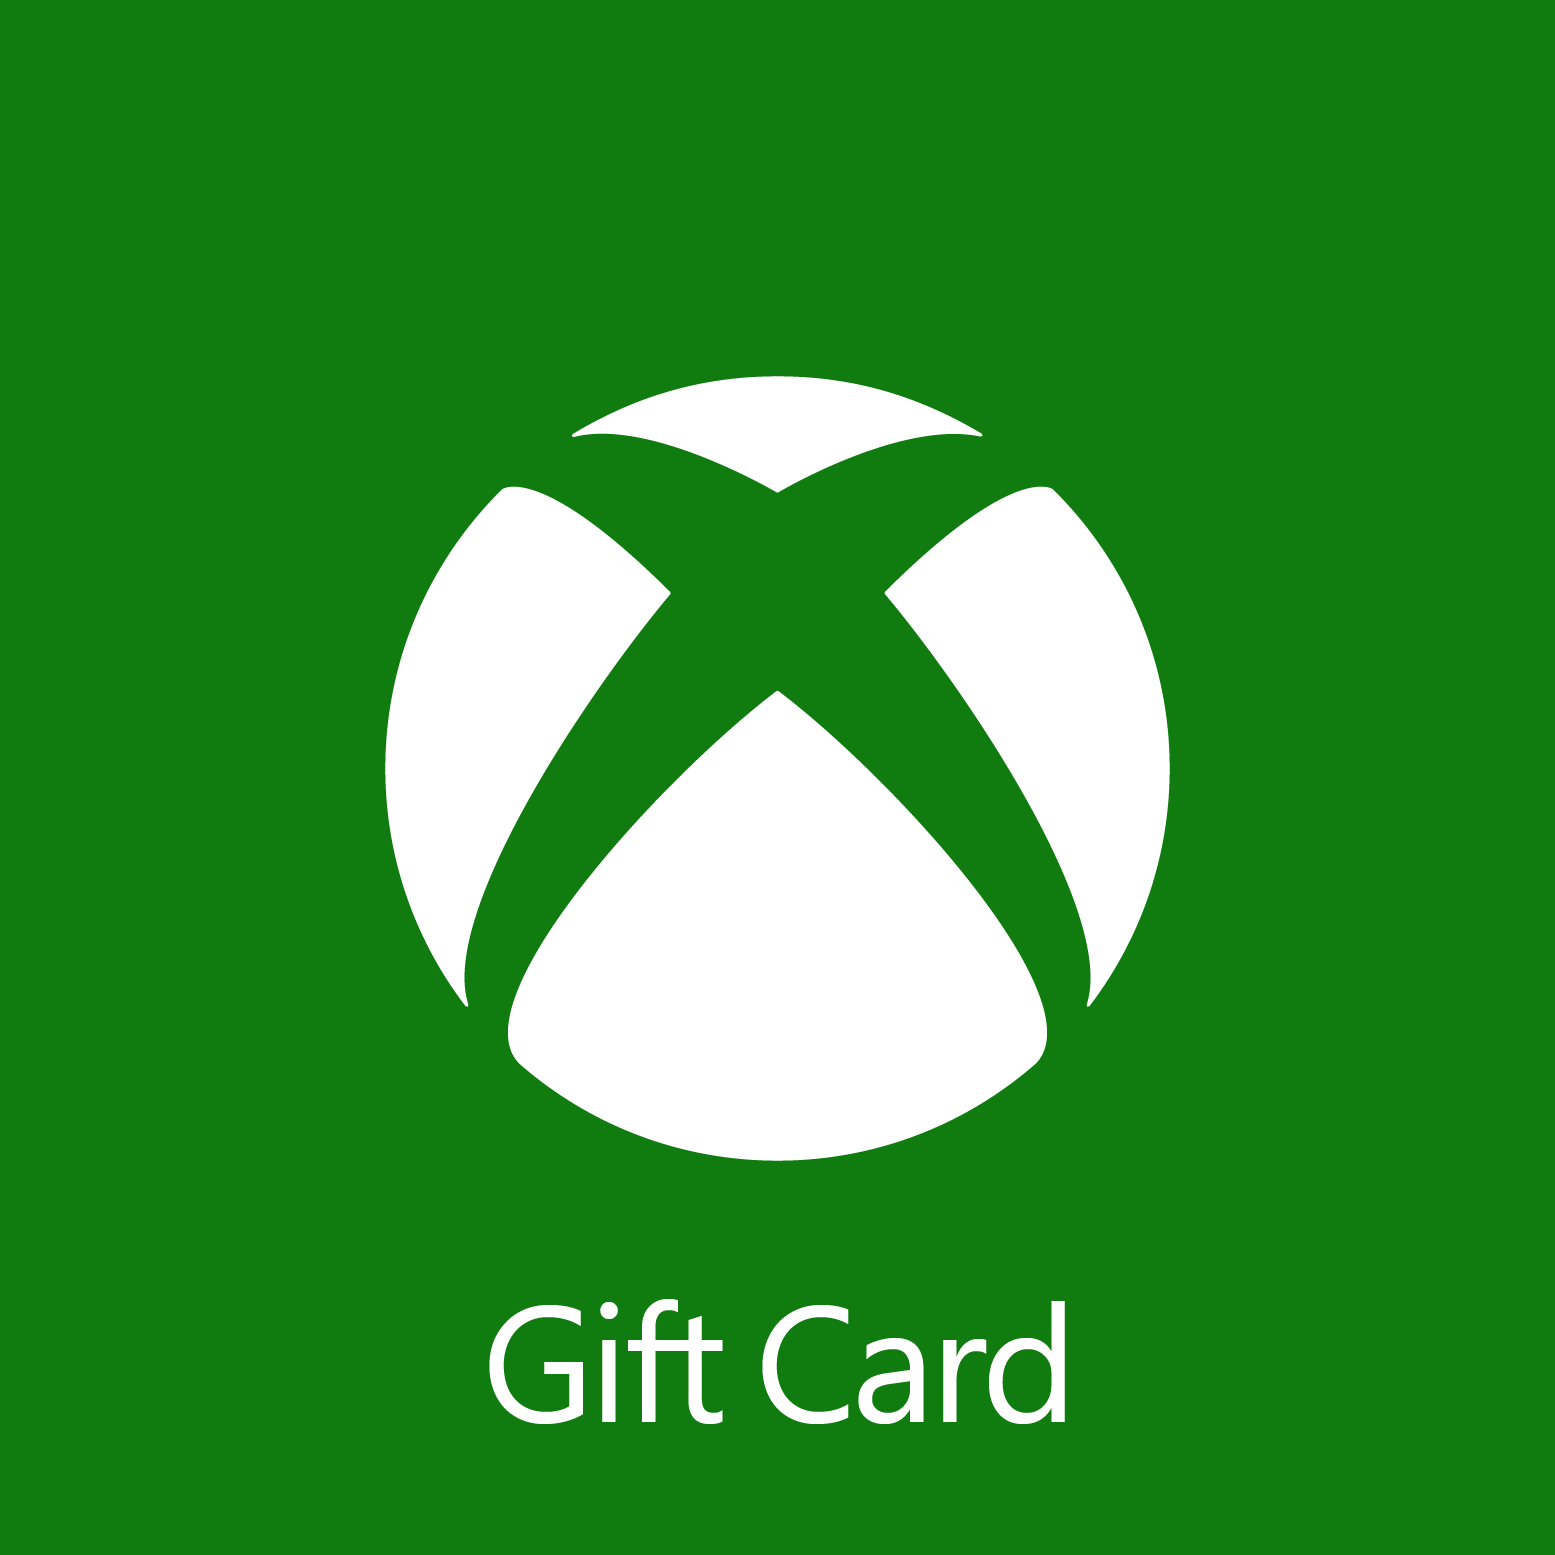 RE1Xx20?ver=255f - $22.00 Xbox Digital Gift Card